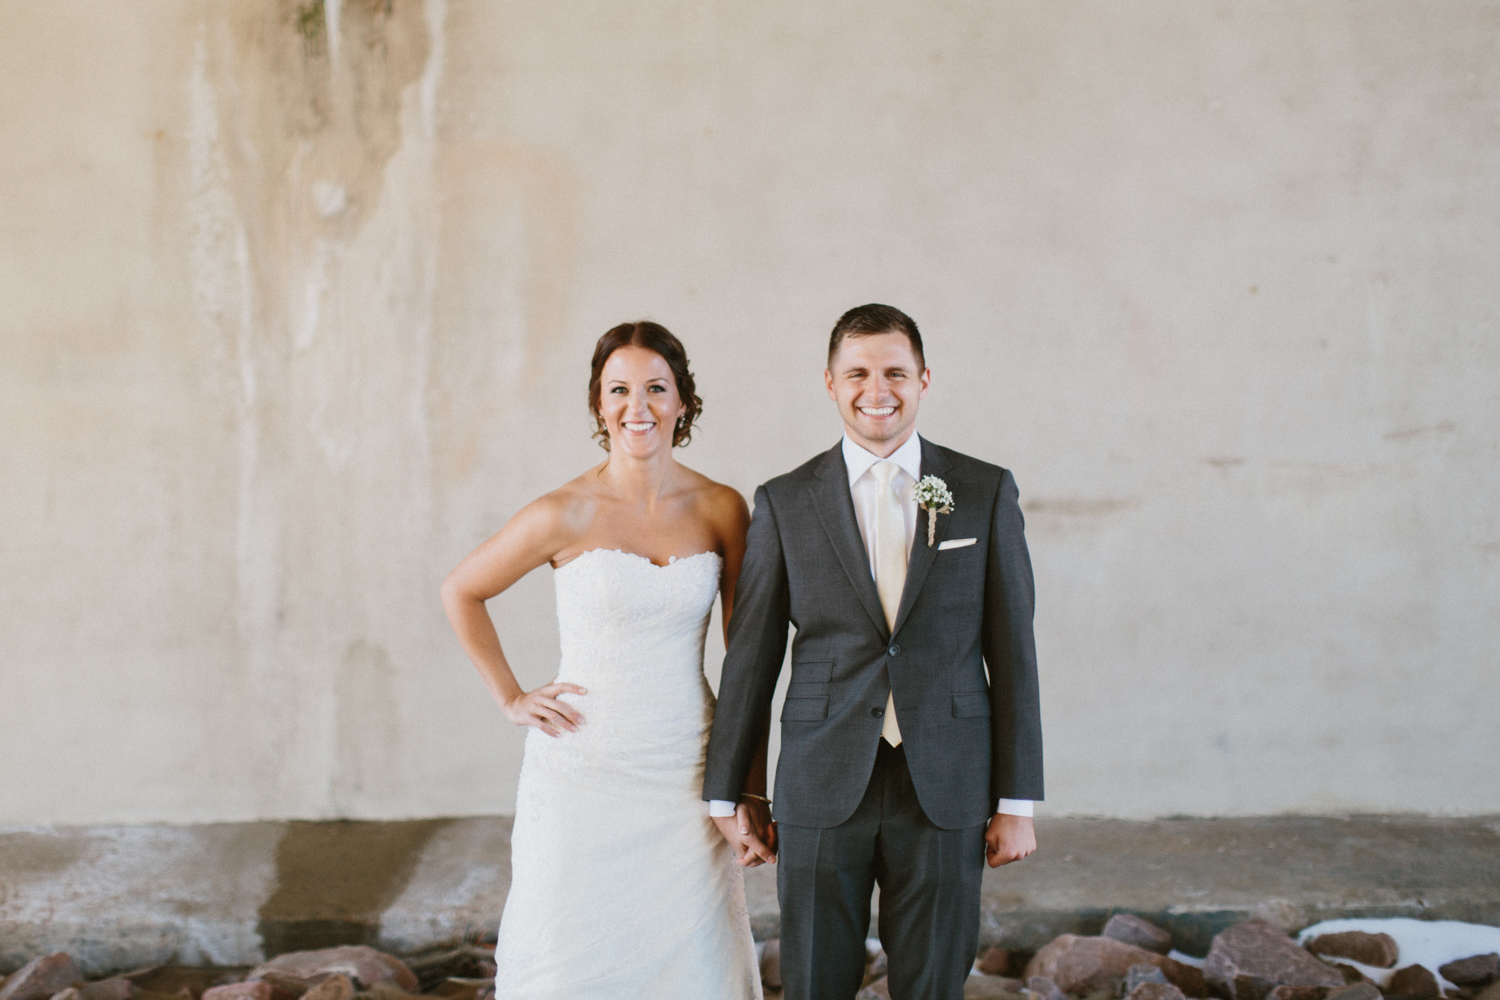 israel&aubrey_siouxfalls_wedding_photographer_41.jpg